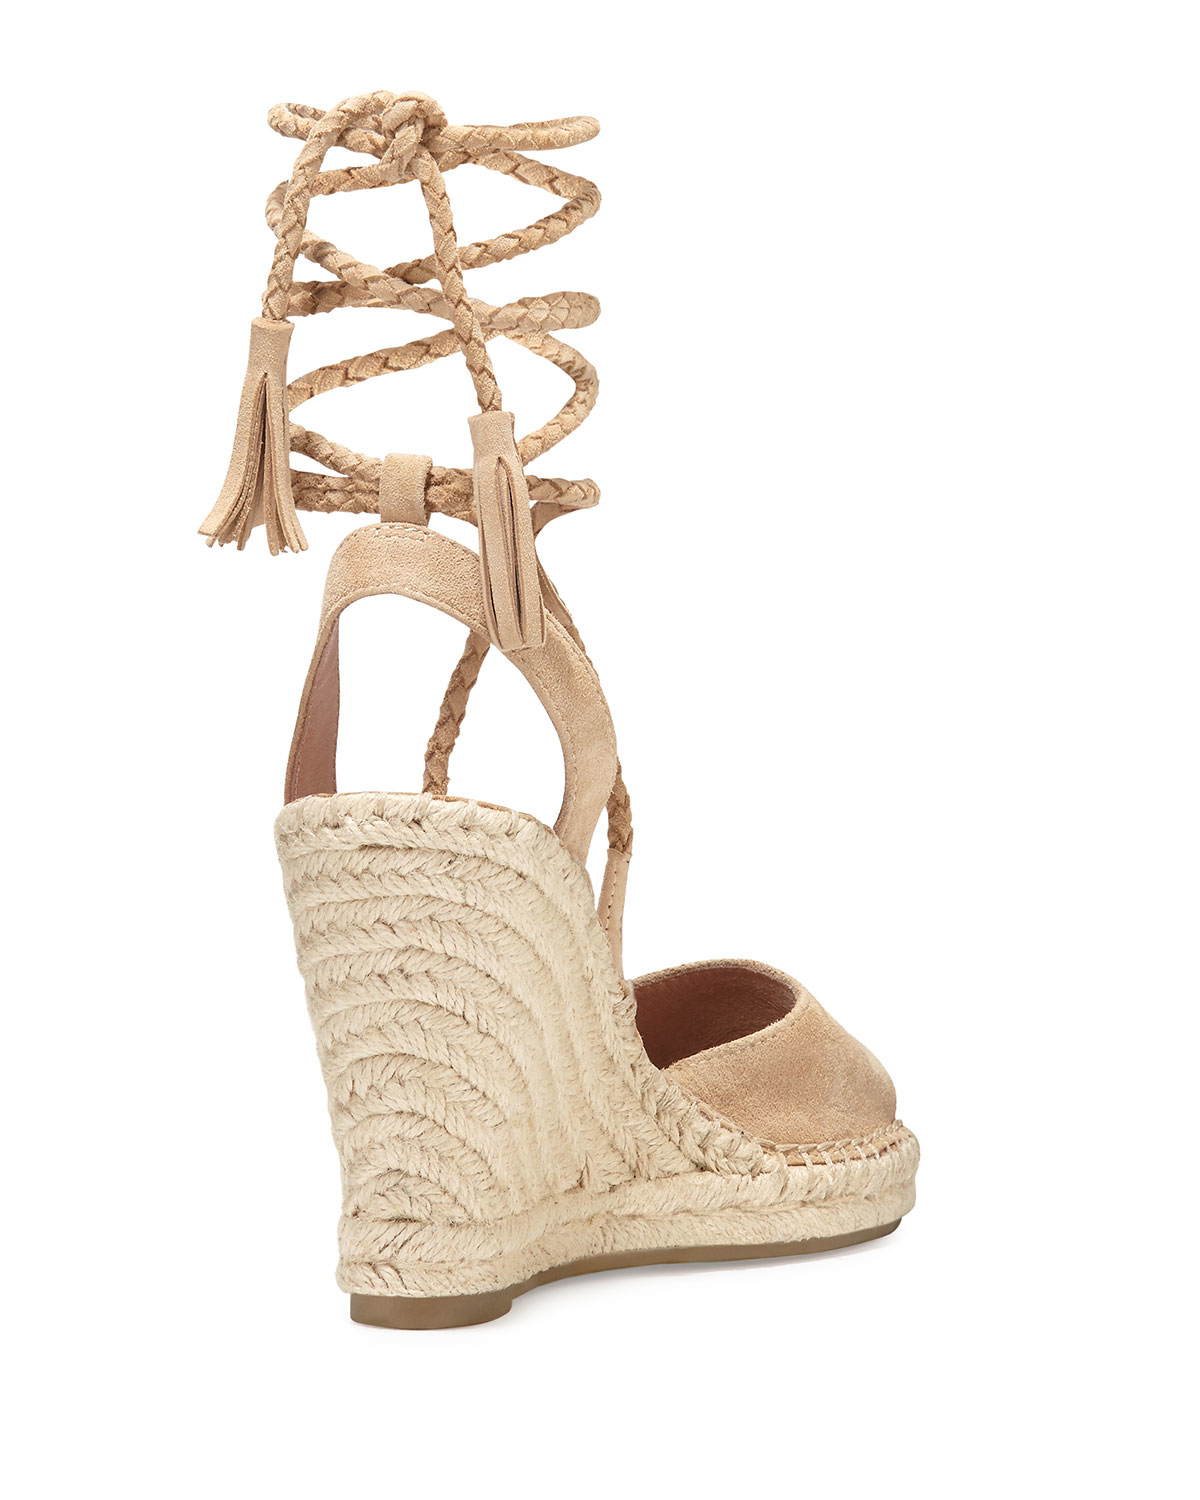 751f2bef653 Lyst - Joie Phyllis Suede Wedge Espadrilles in Natural